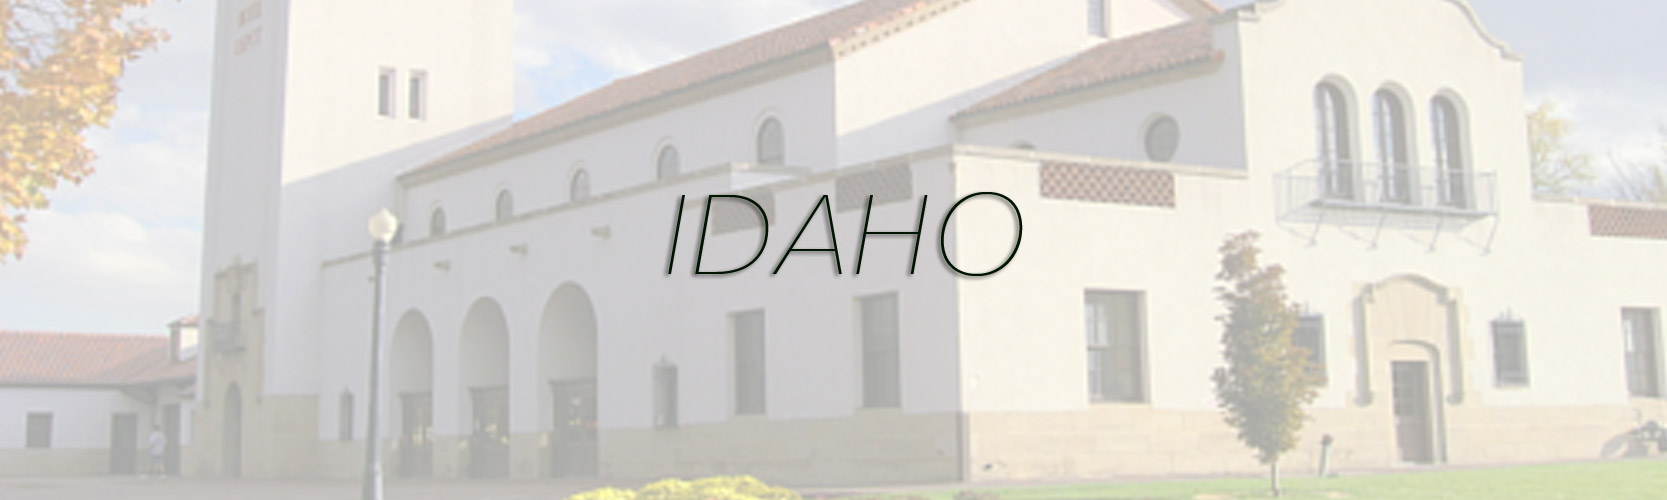 Shipping Futons, Sofa Beds, and Other Futon Shop products to Idaho